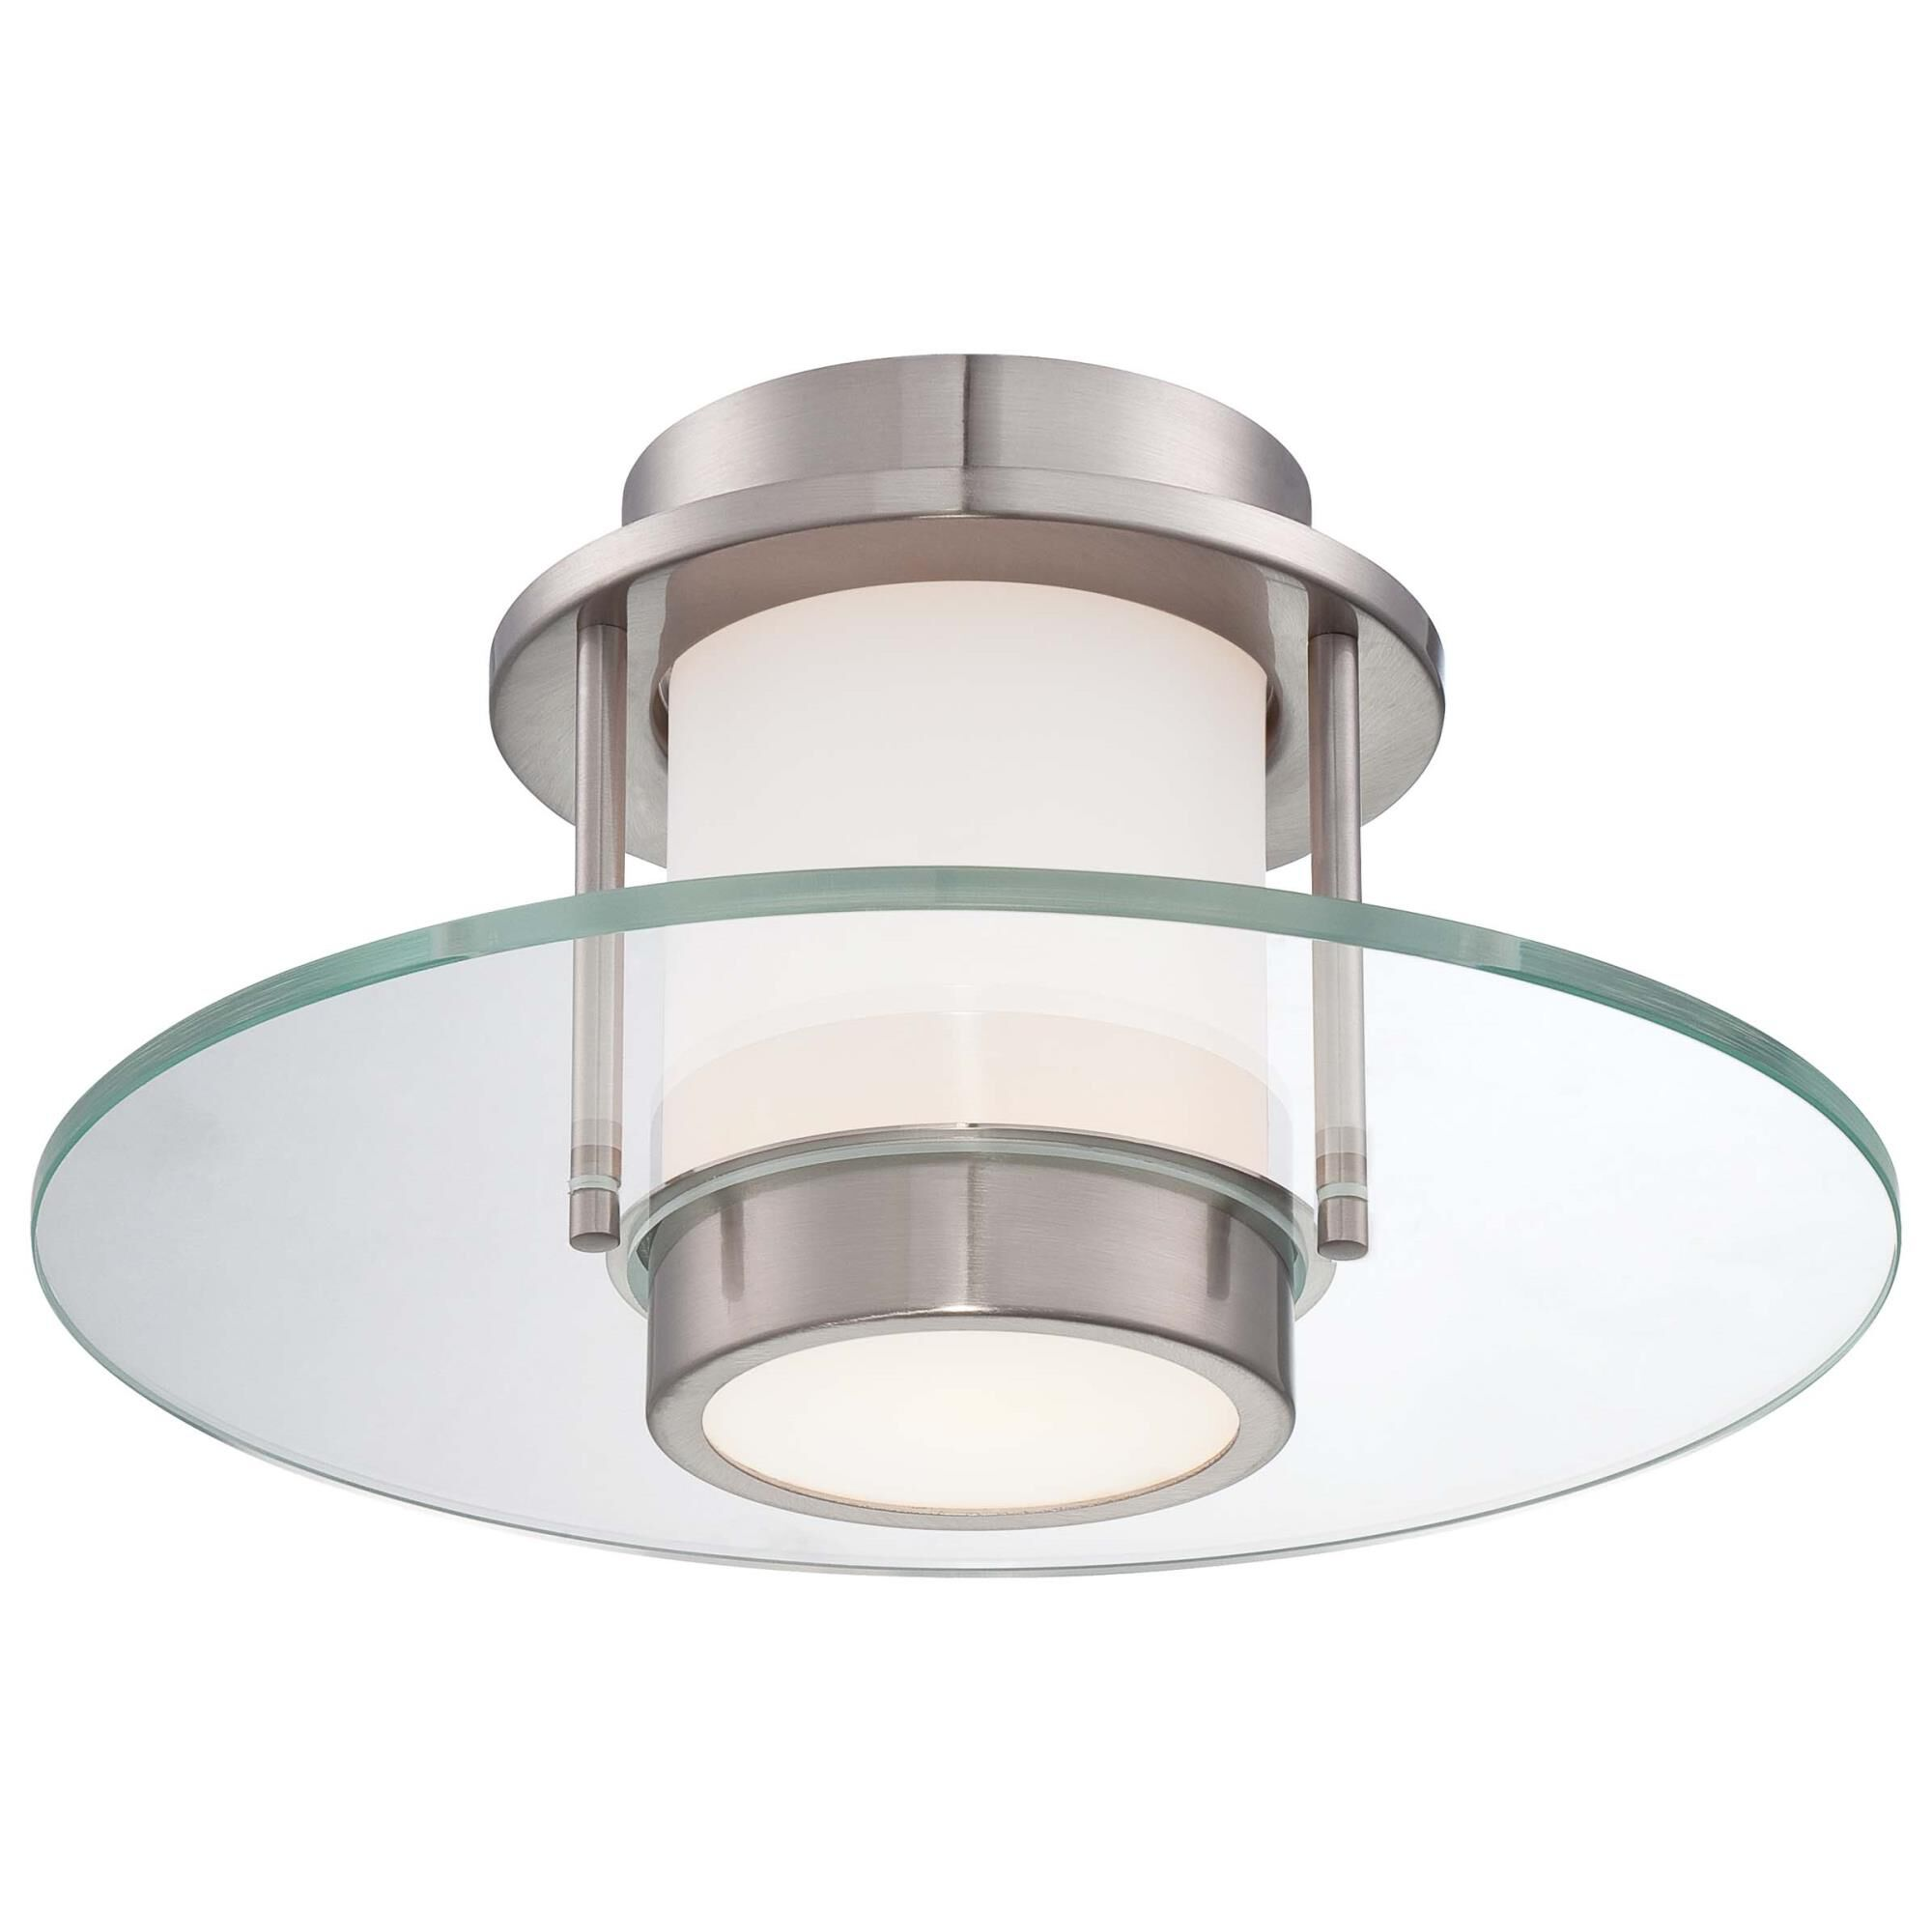 Kovacs 13 Inch 1 Light Semi Flush Mount - P854-084 - Modern Contemporary